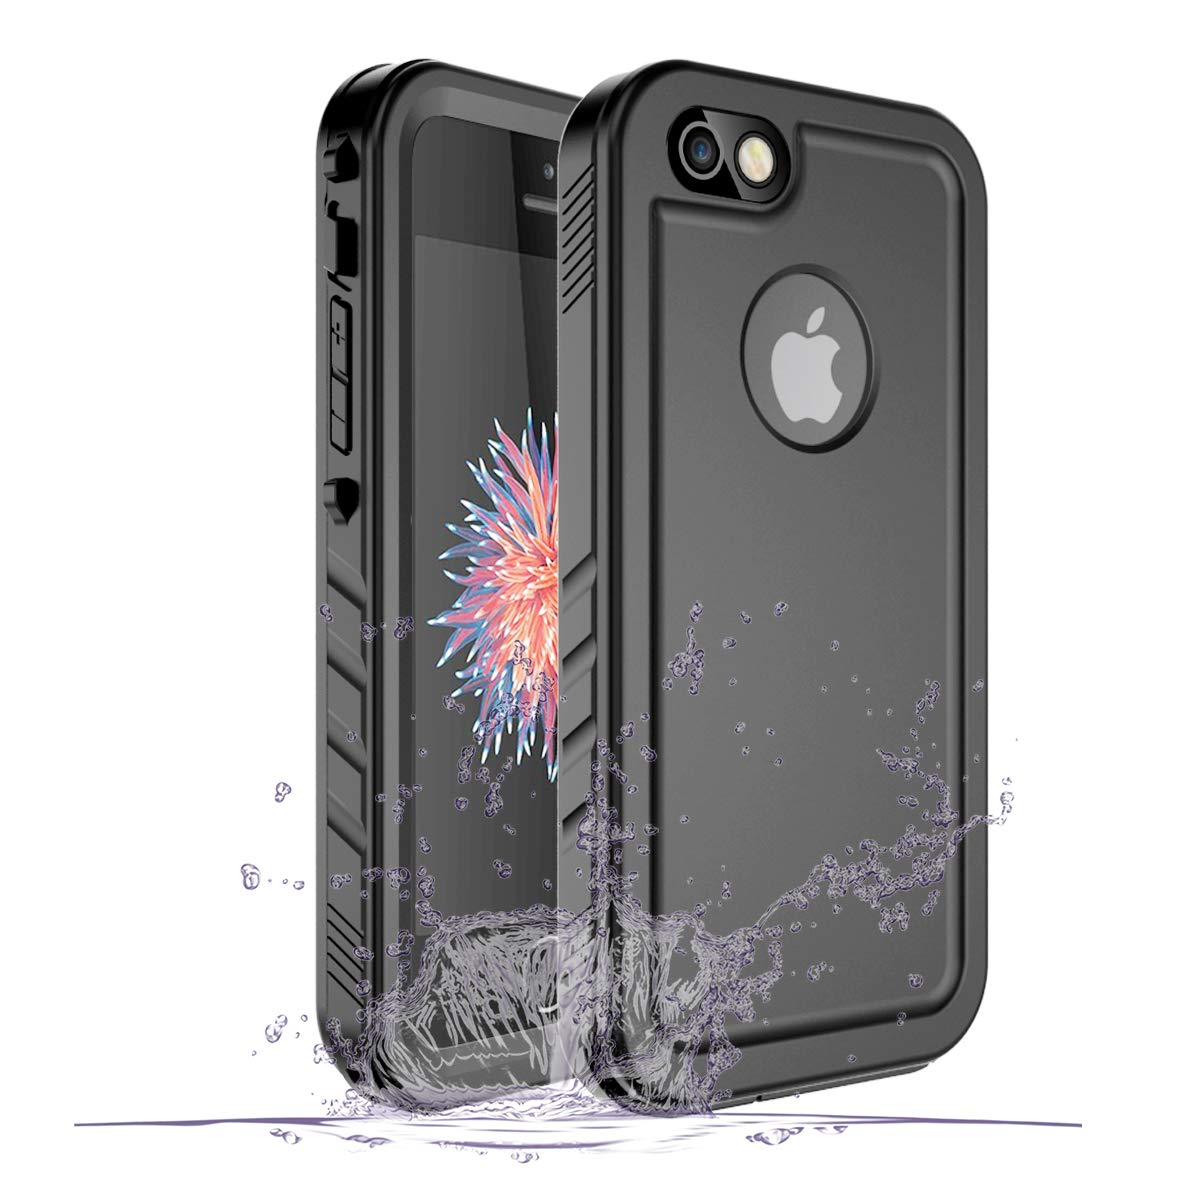 promo code e40d2 24865 iPhone SE/5/5S Waterproof Case, Waterproof iPhone SE Shockproof Full-Body  Rugged Cover Case with Built-in Screen Protector for Apple iPhone SE/5/5S  ...